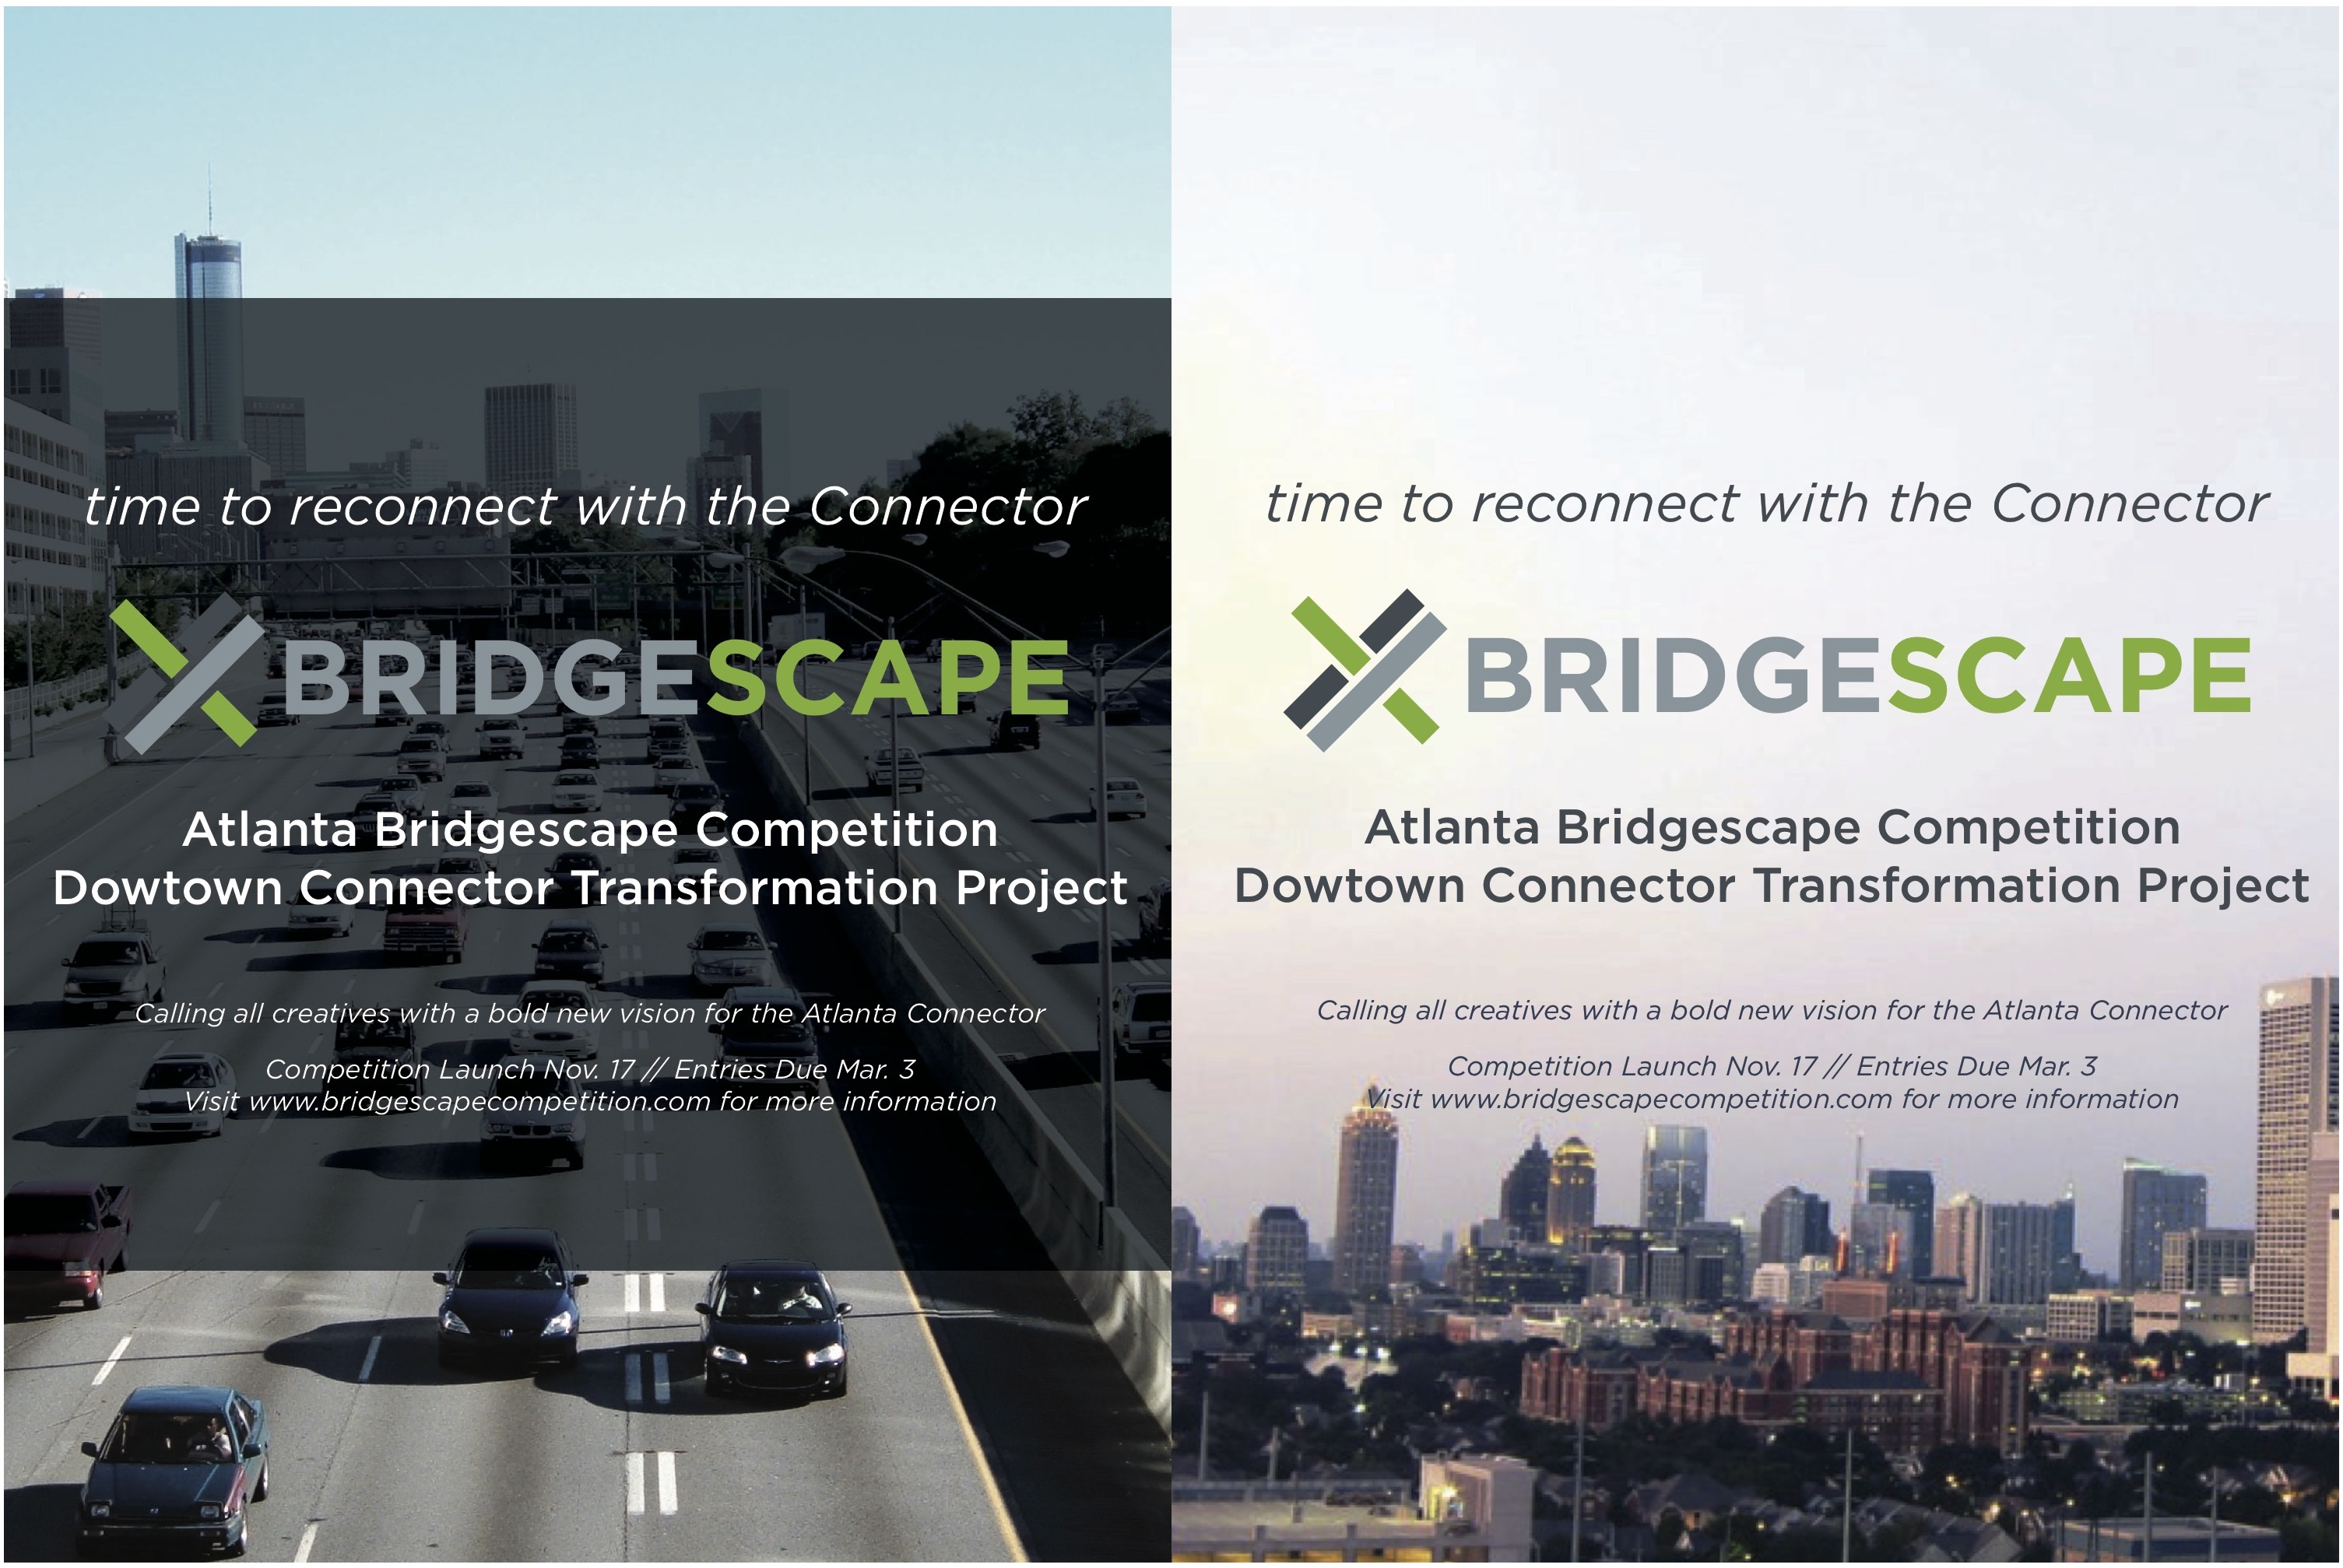 bridgescape poster designs